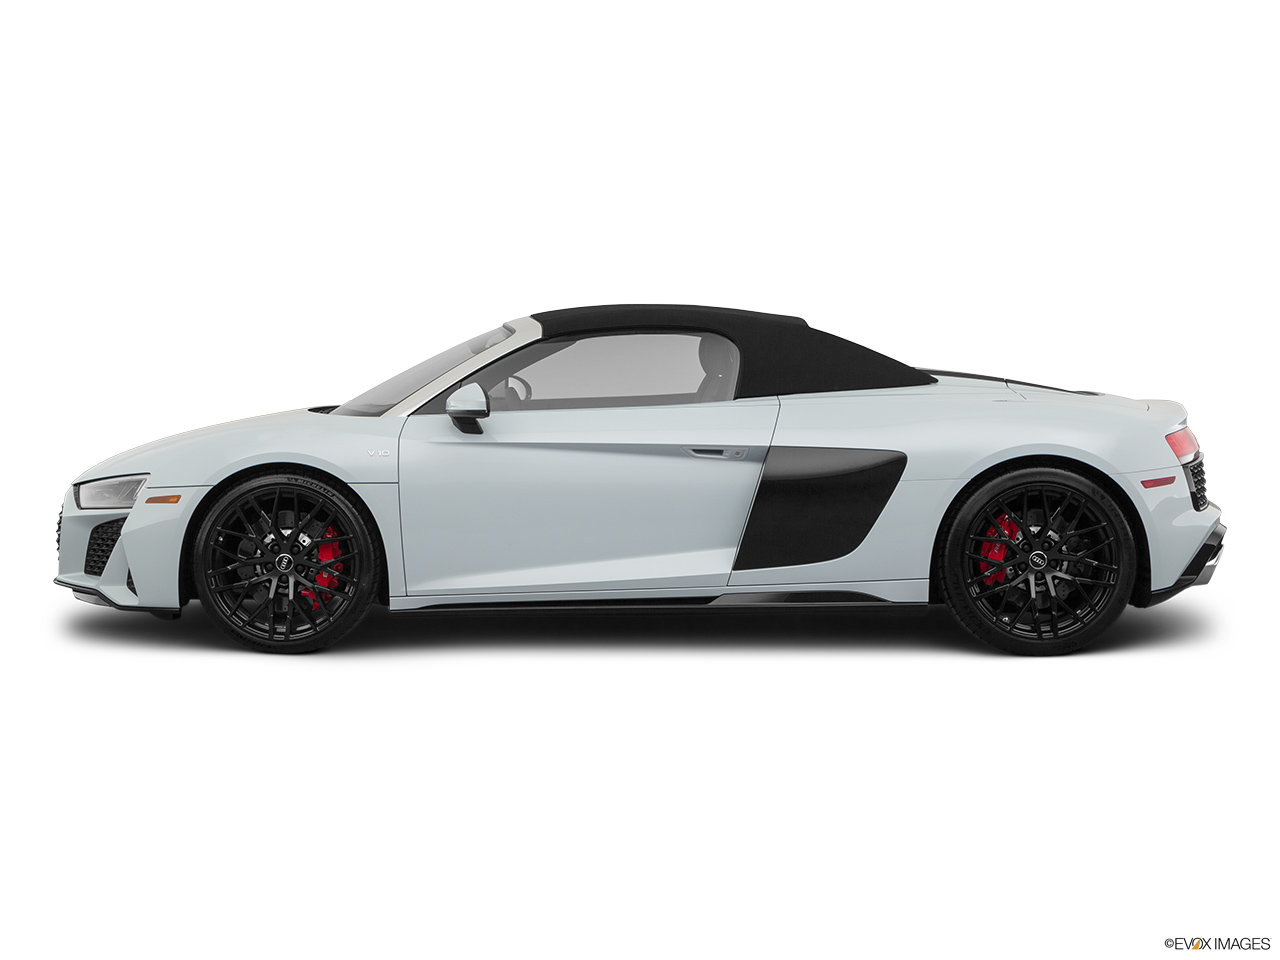 2020 Audi R8 Spyder V10 Drivers side profile, convertible top up (convertibles only).